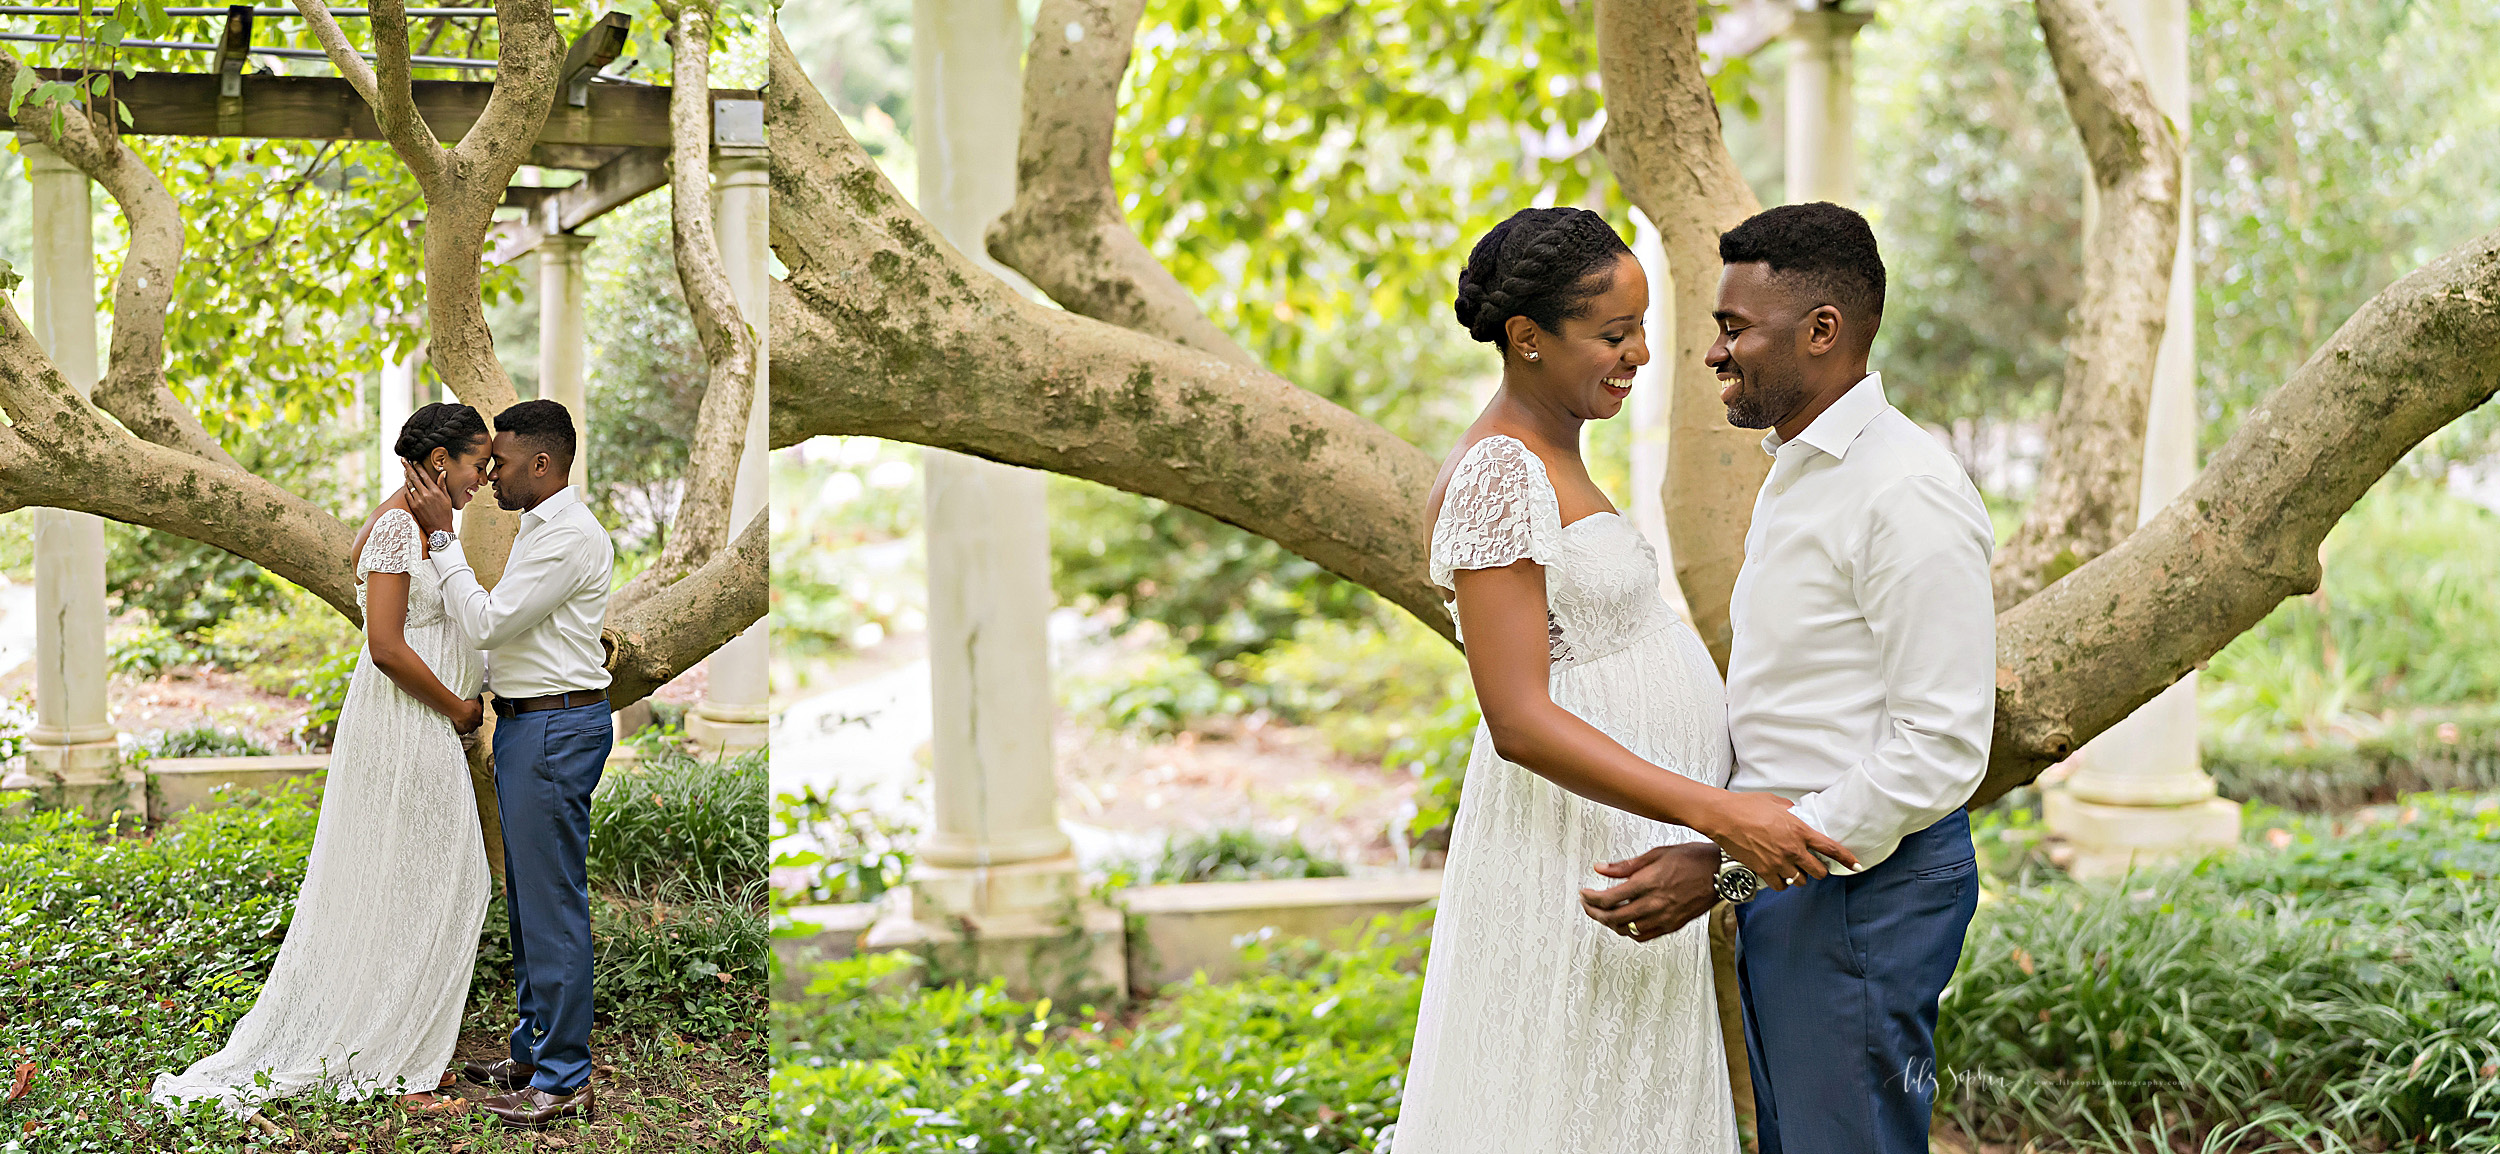 Split image photo of an expectant African-American couple as they stand in front of a tree in a garden in Atlanta, Georgia at sunset.